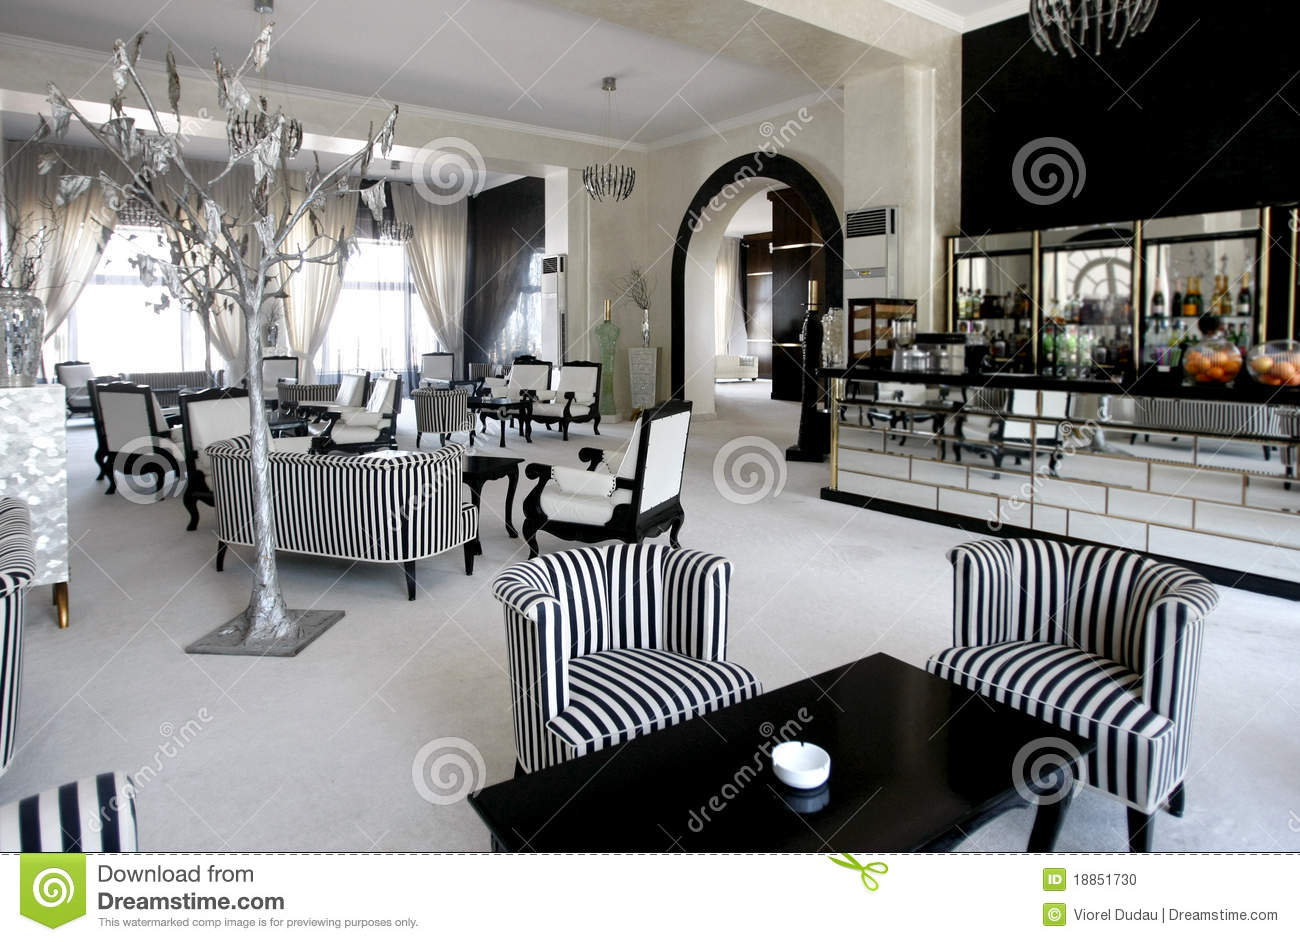 luxury cafe in expensive hotel stock photo - image: 18851730